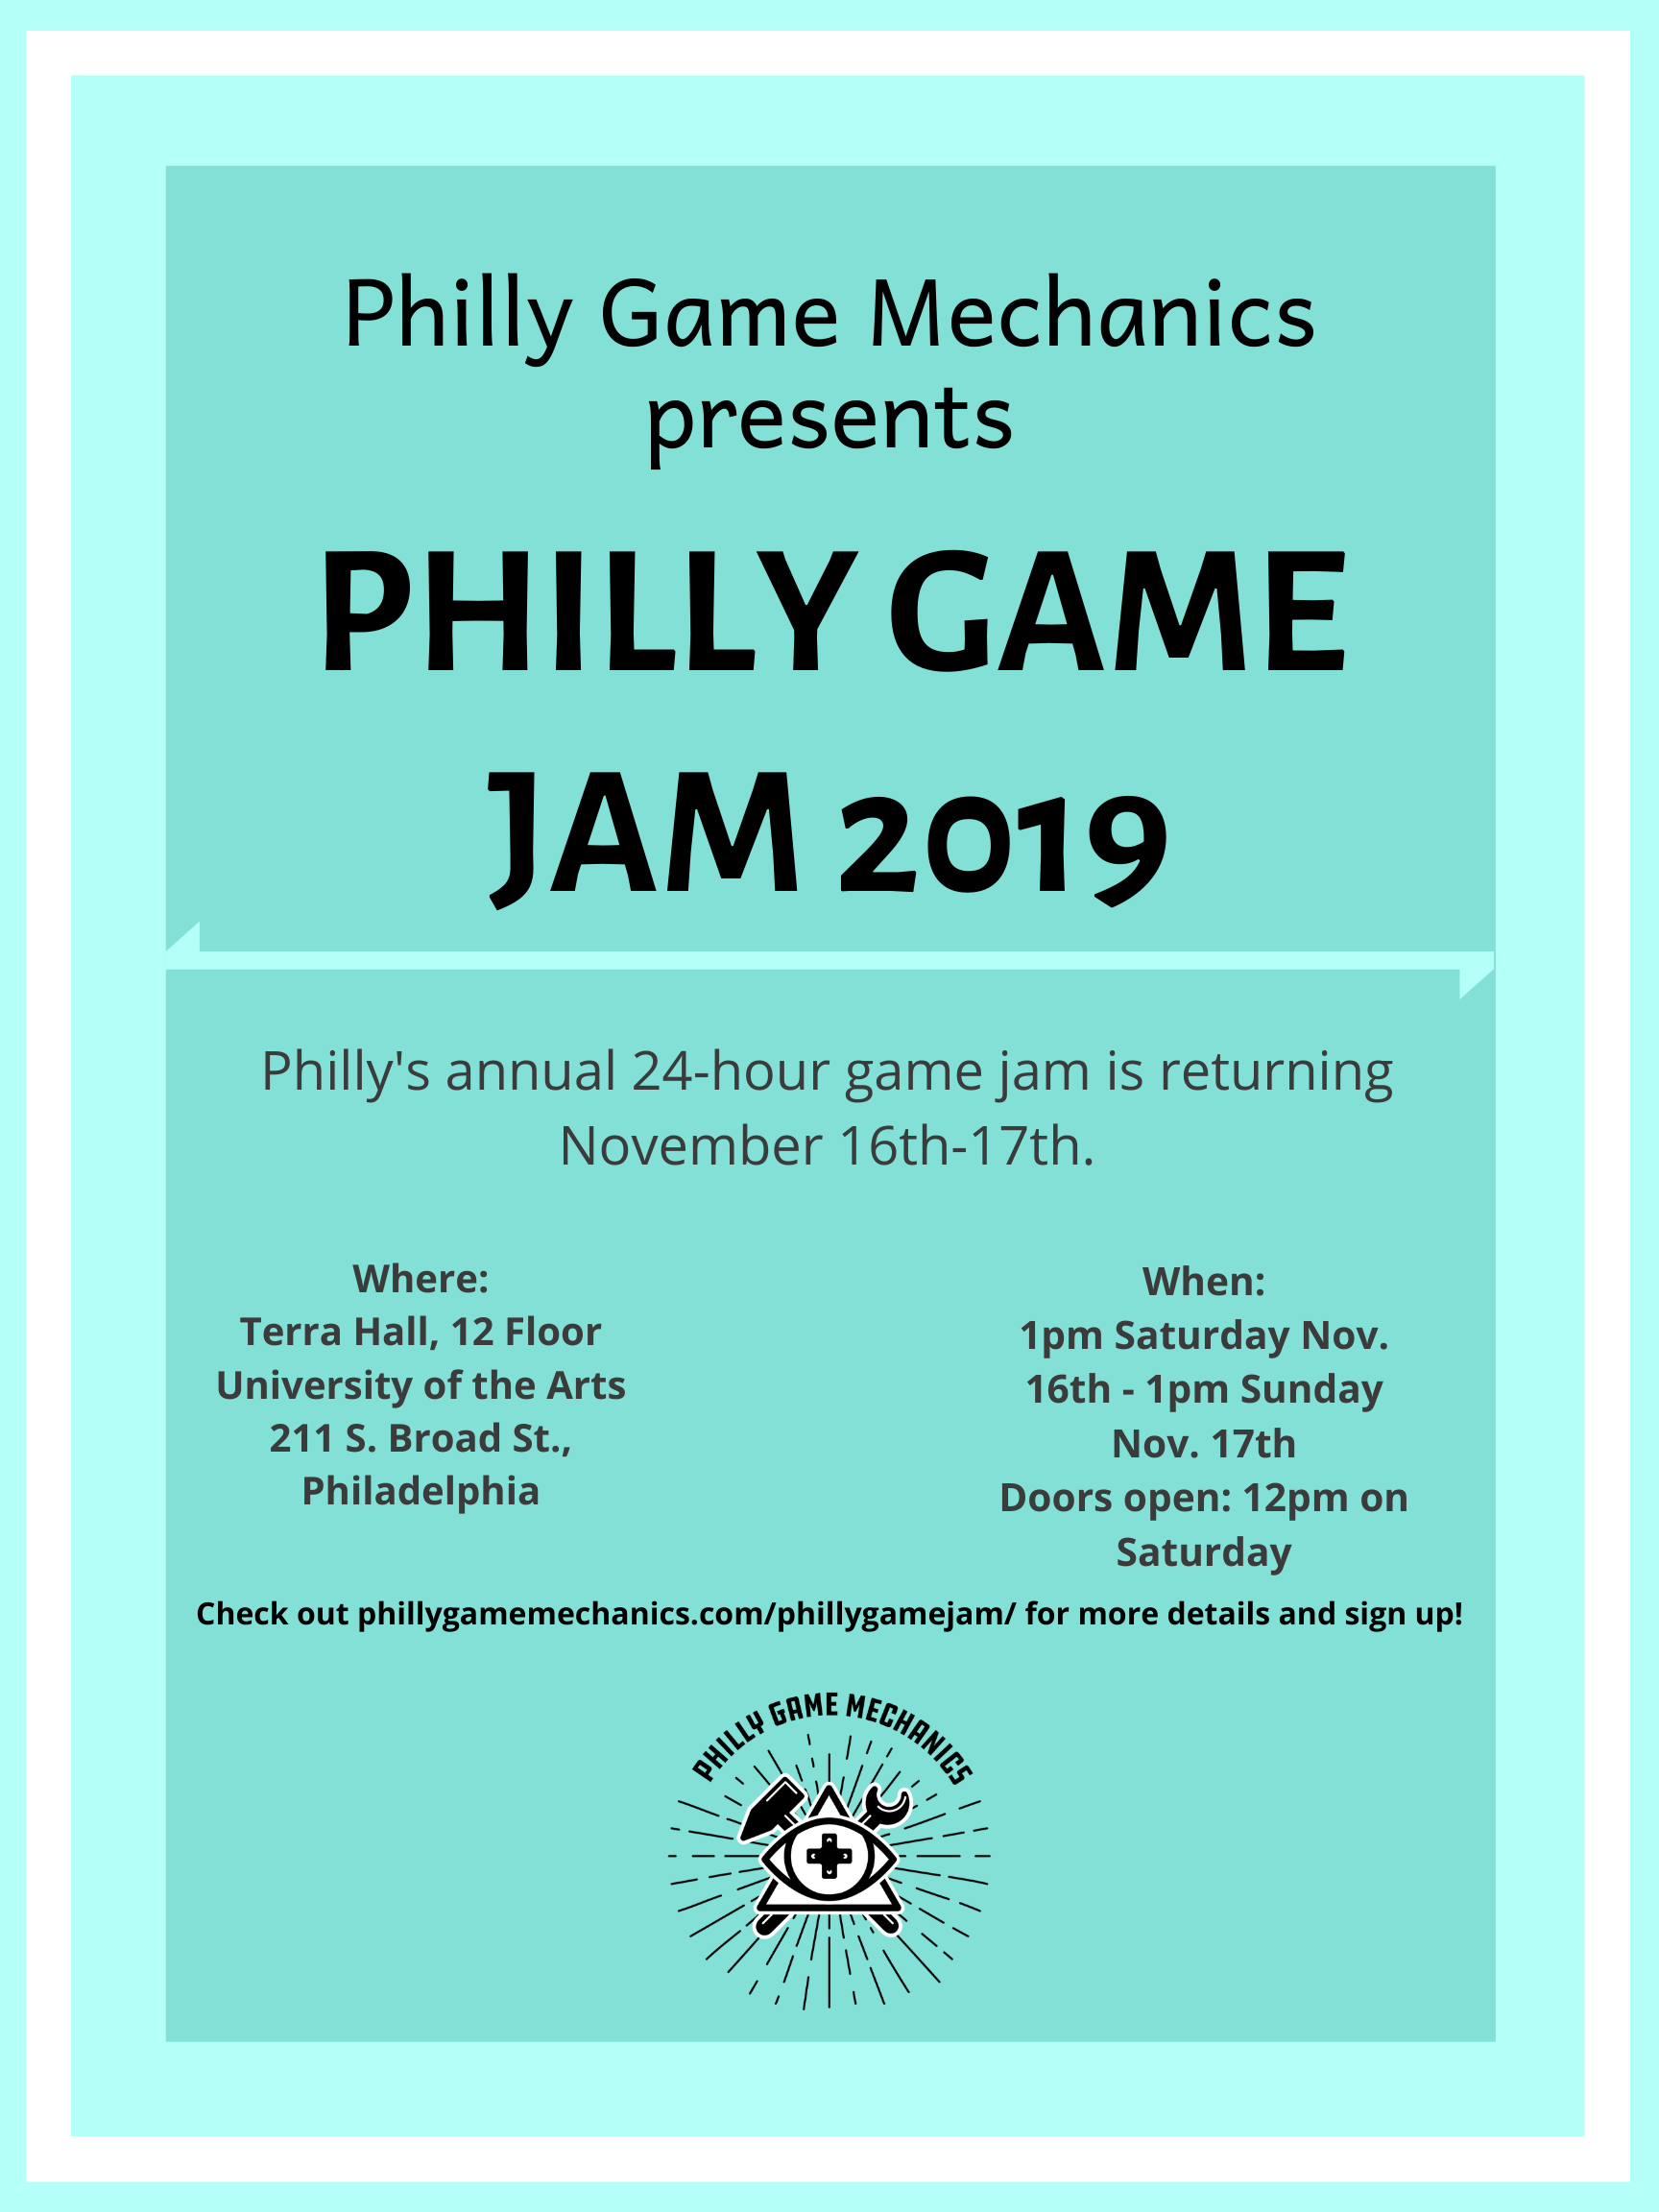 philly game mechanics philly game jam 2019 philly game mechanics philly game jam 2019